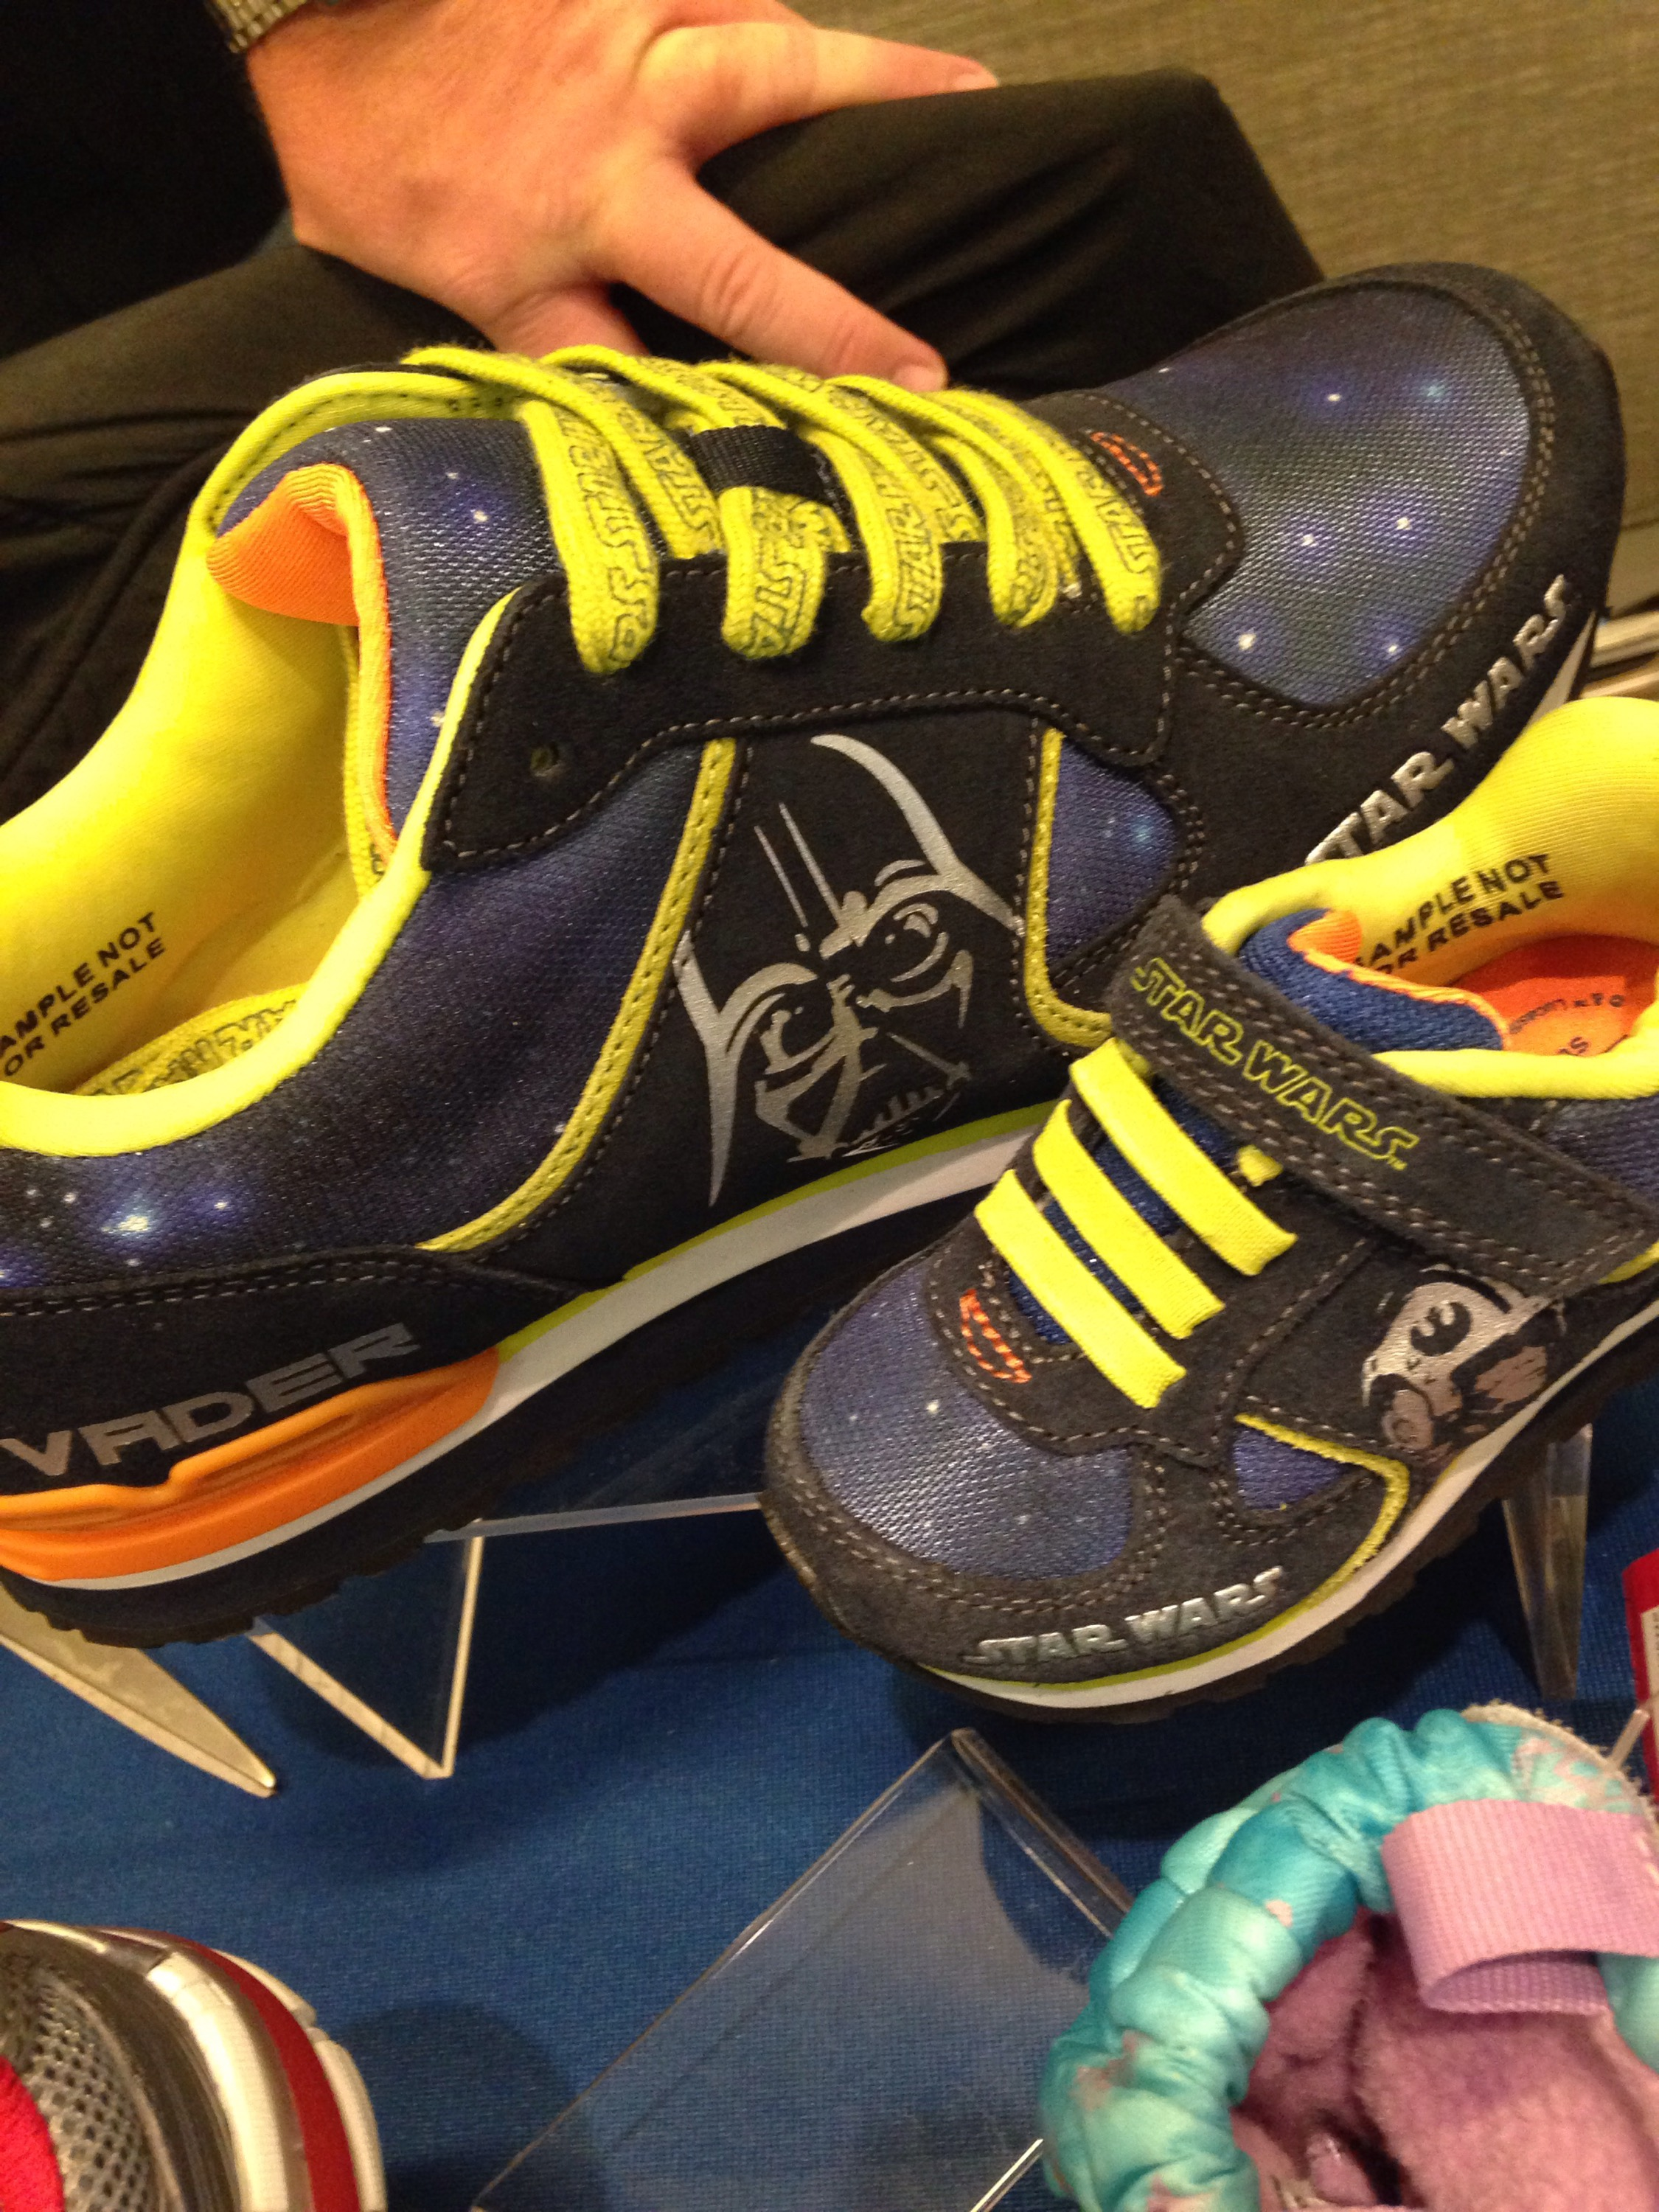 Video and Photos Limited Edition Stride Rite Star Wars retro sneakers